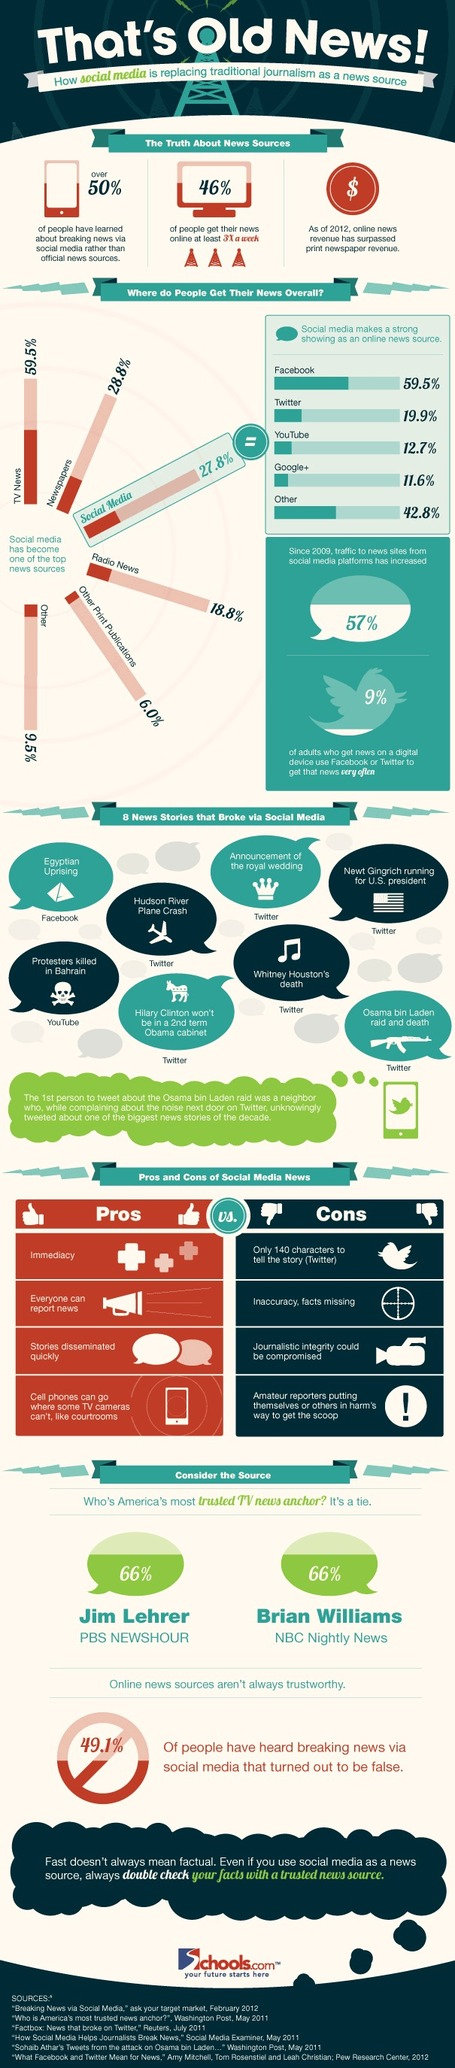 Social media: The new news source [infographic] Scool.com | Radio 2.0 (Fr & En) | Scoop.it